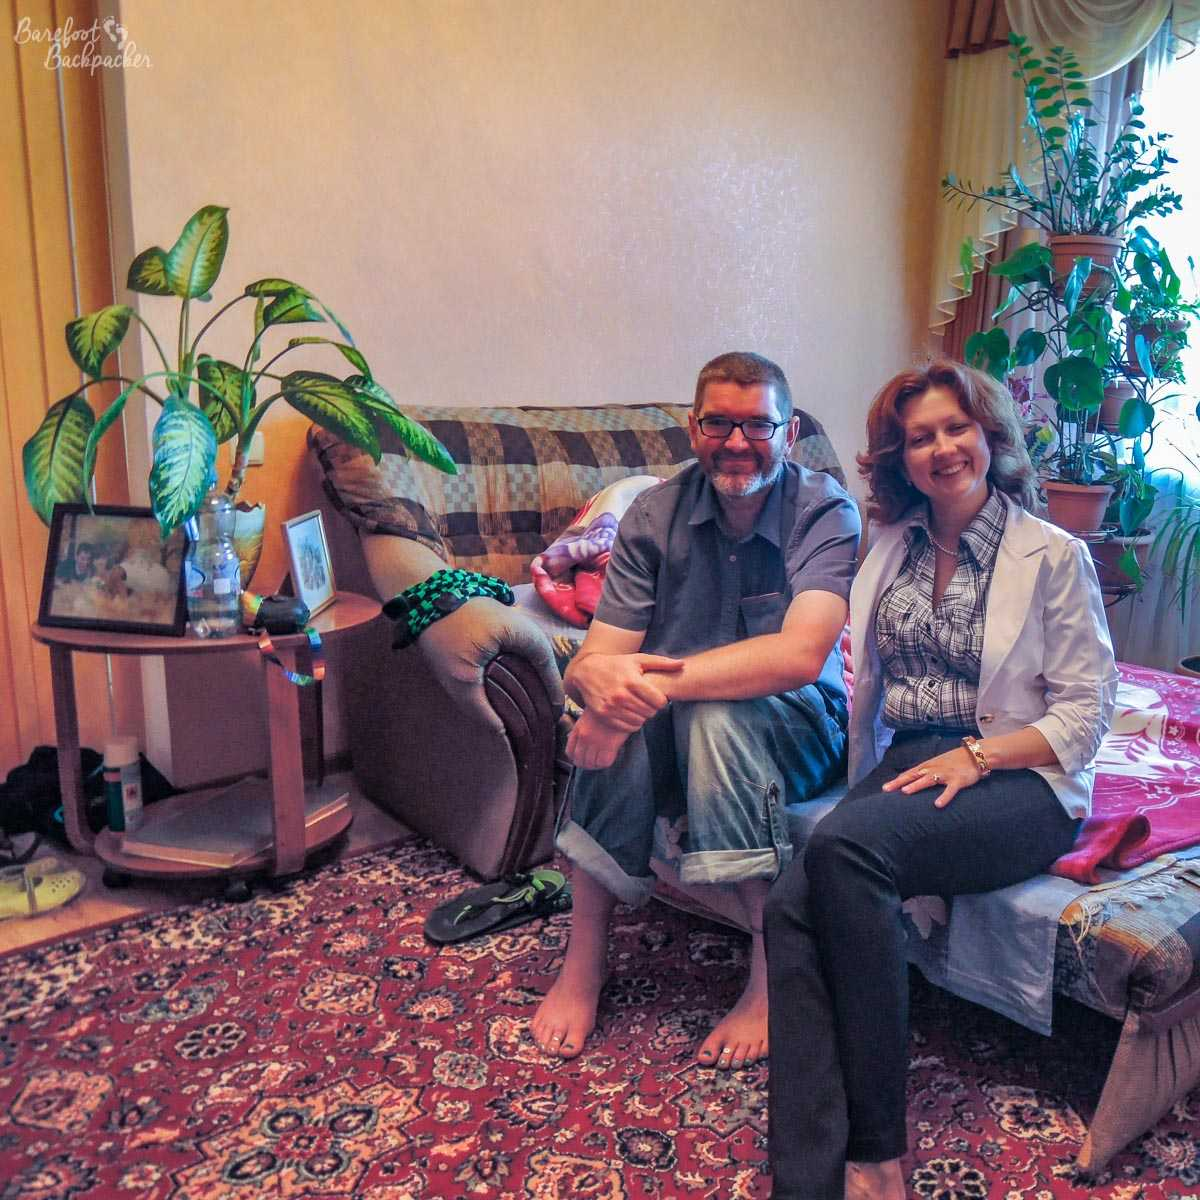 The Barefoot Backpacker and his couchsurfing host (Olga) in her flat in Tiraspol.